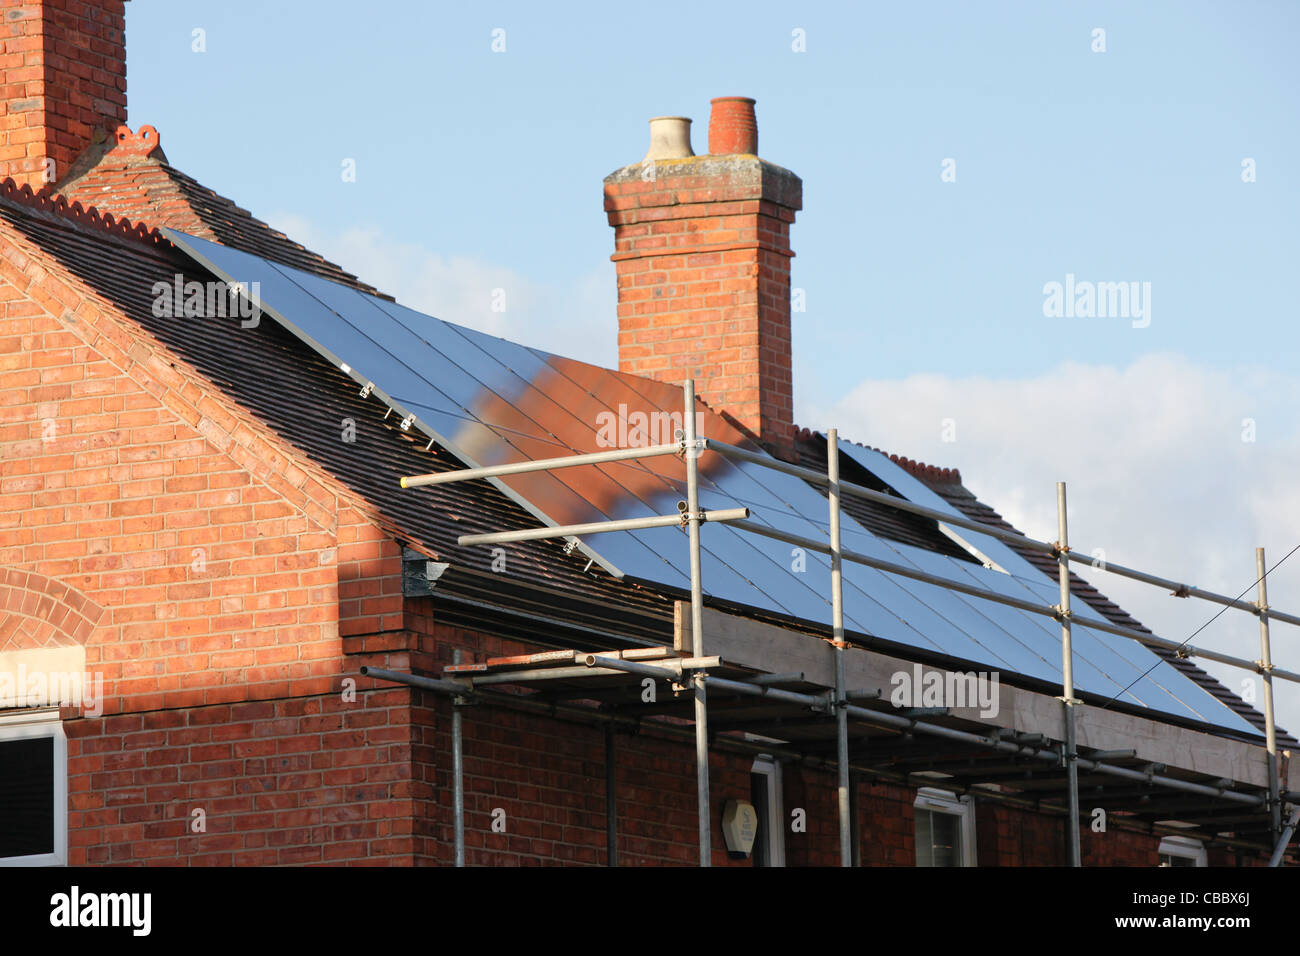 Newly installed solar panel array,to generate renewable energy from the sun. Installation is on a pitched roof on - Stock Image